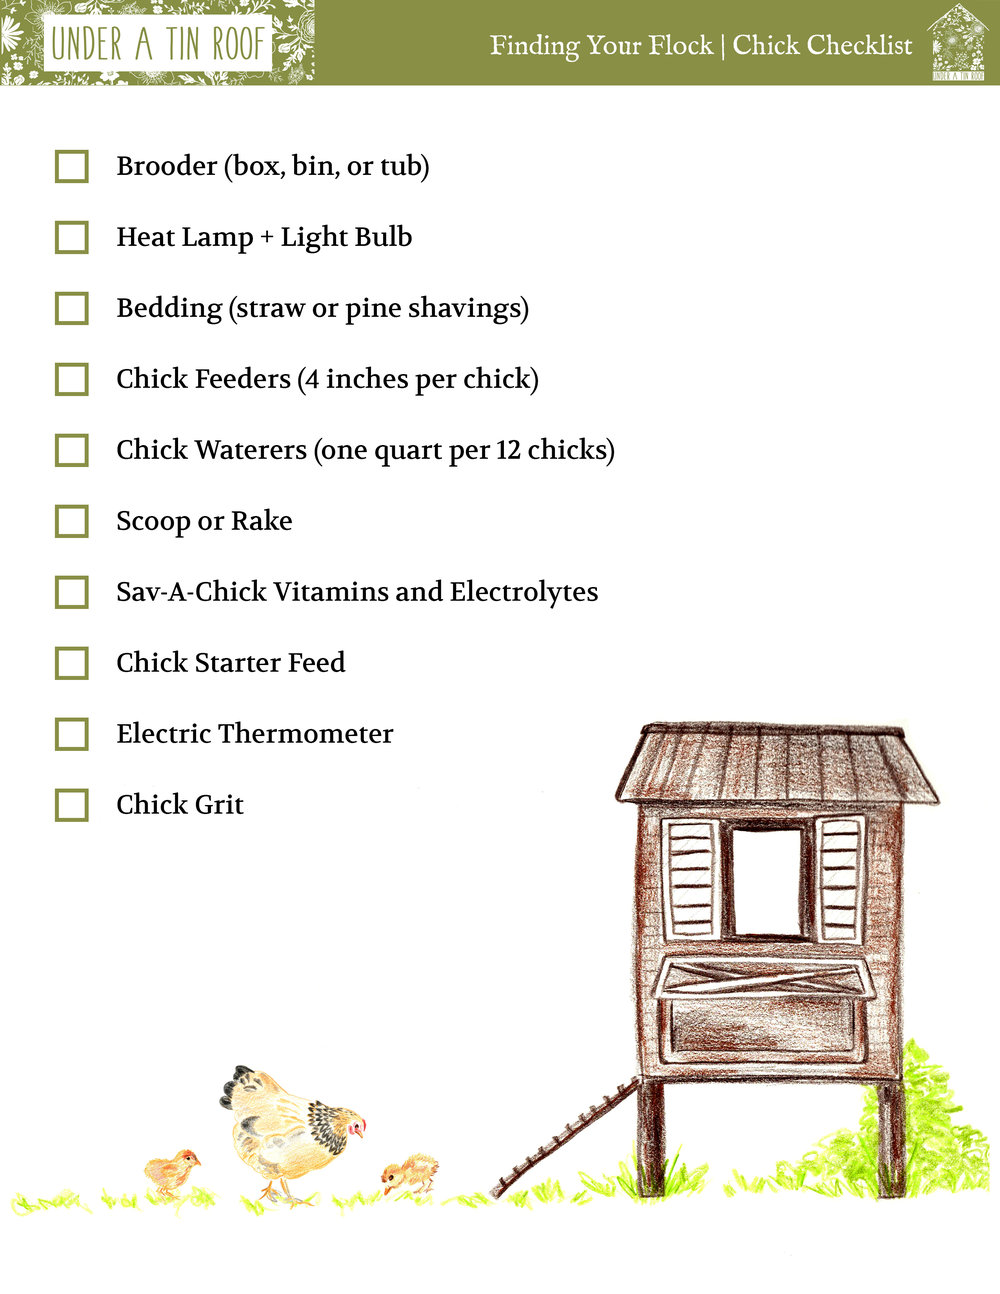 What Do I Need? Chick Checklist for the Feed Store - Under A Tin Roof Blog